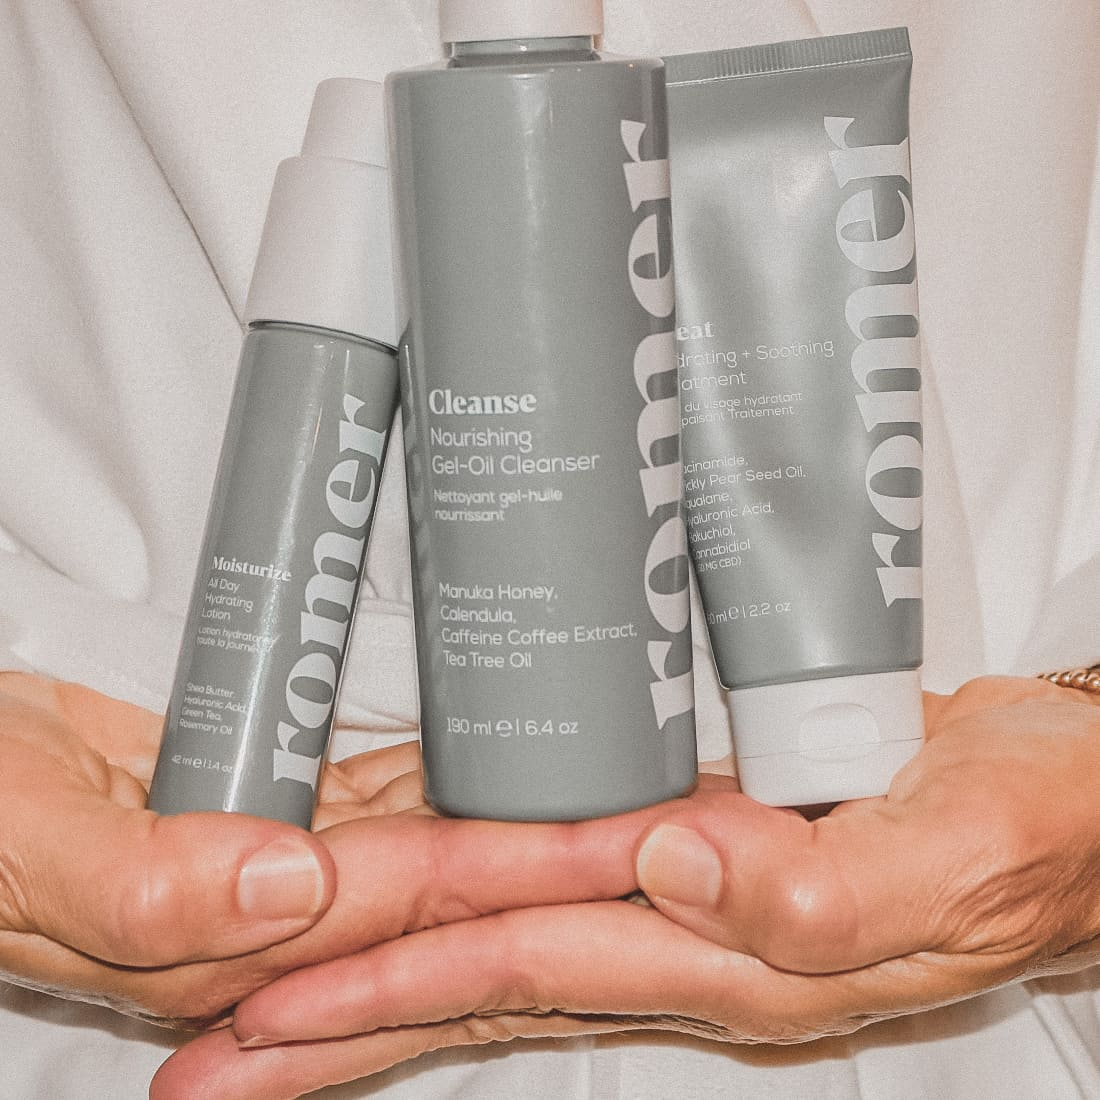 romer skincare three step regimen held in women's hands wearing a spa robe